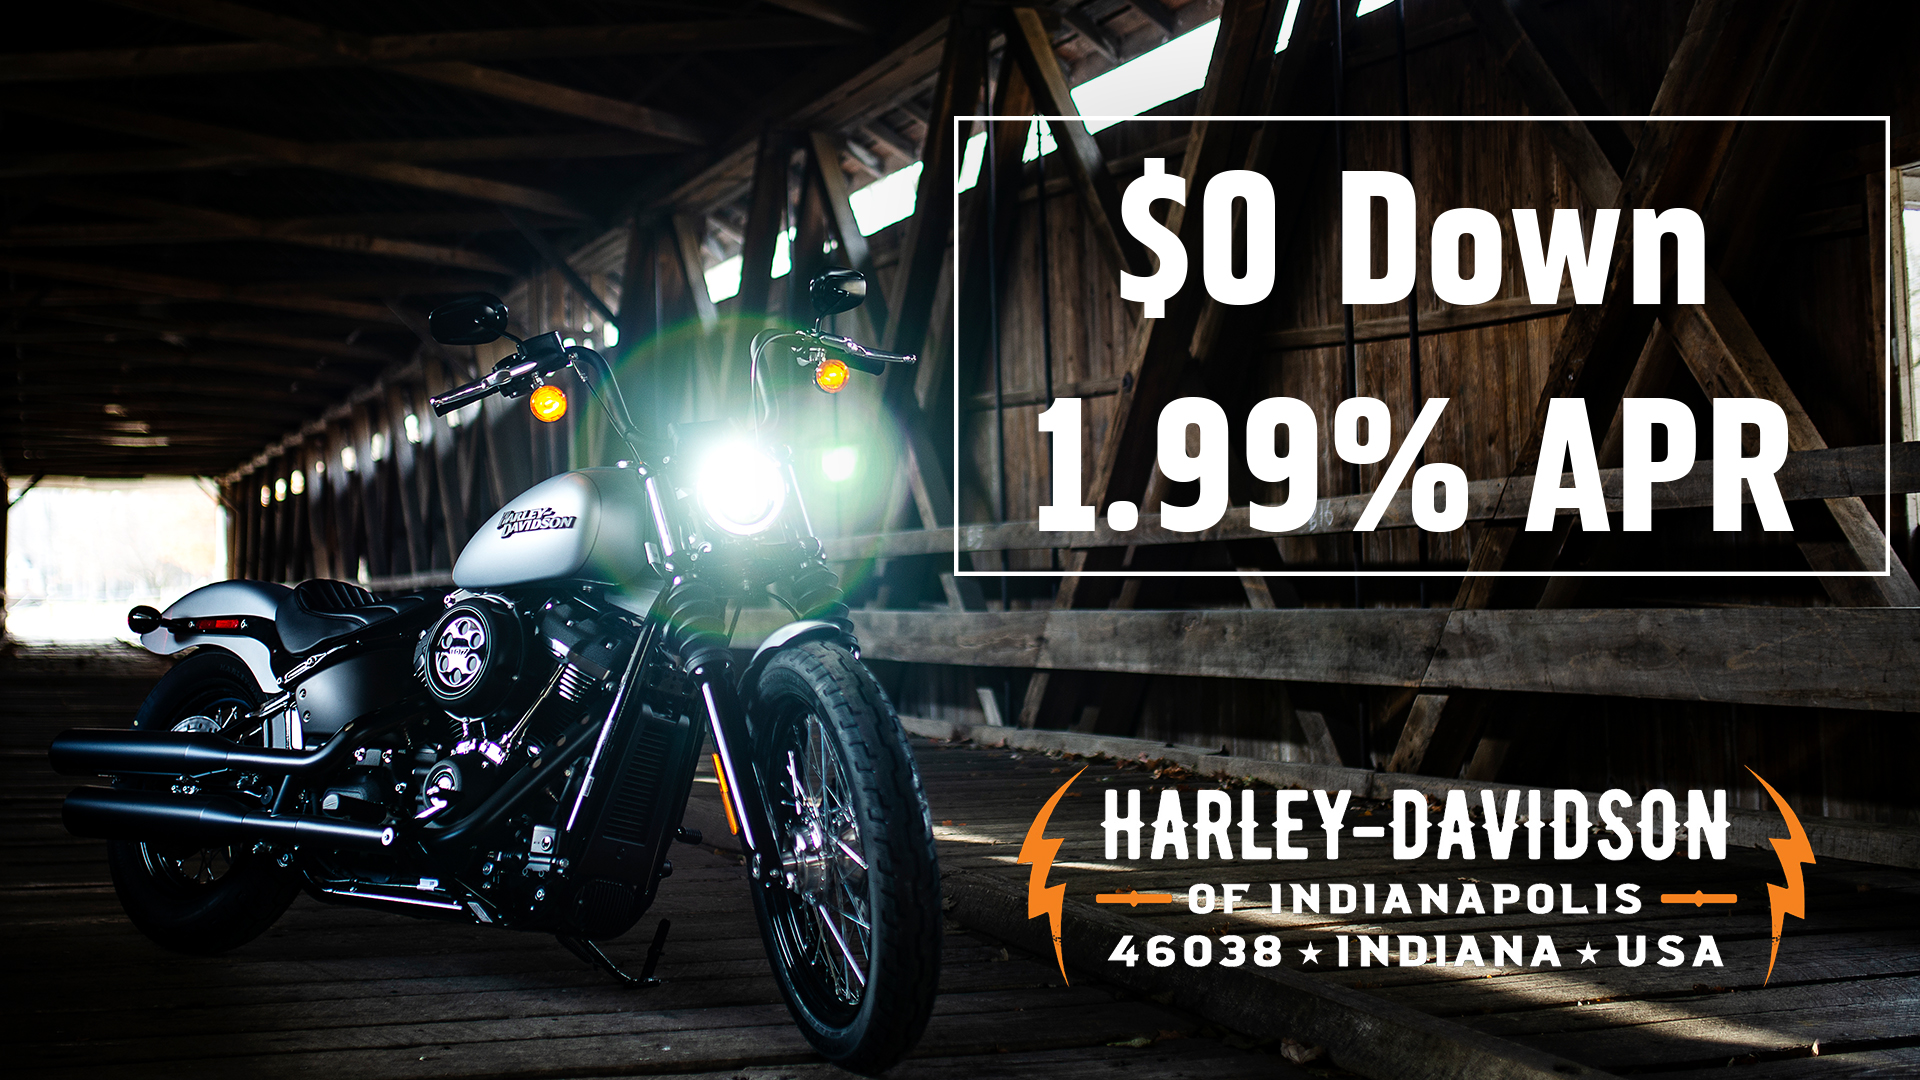 Finance Rates | Buying A Motorcycle | Harley-Davidson Financial Services